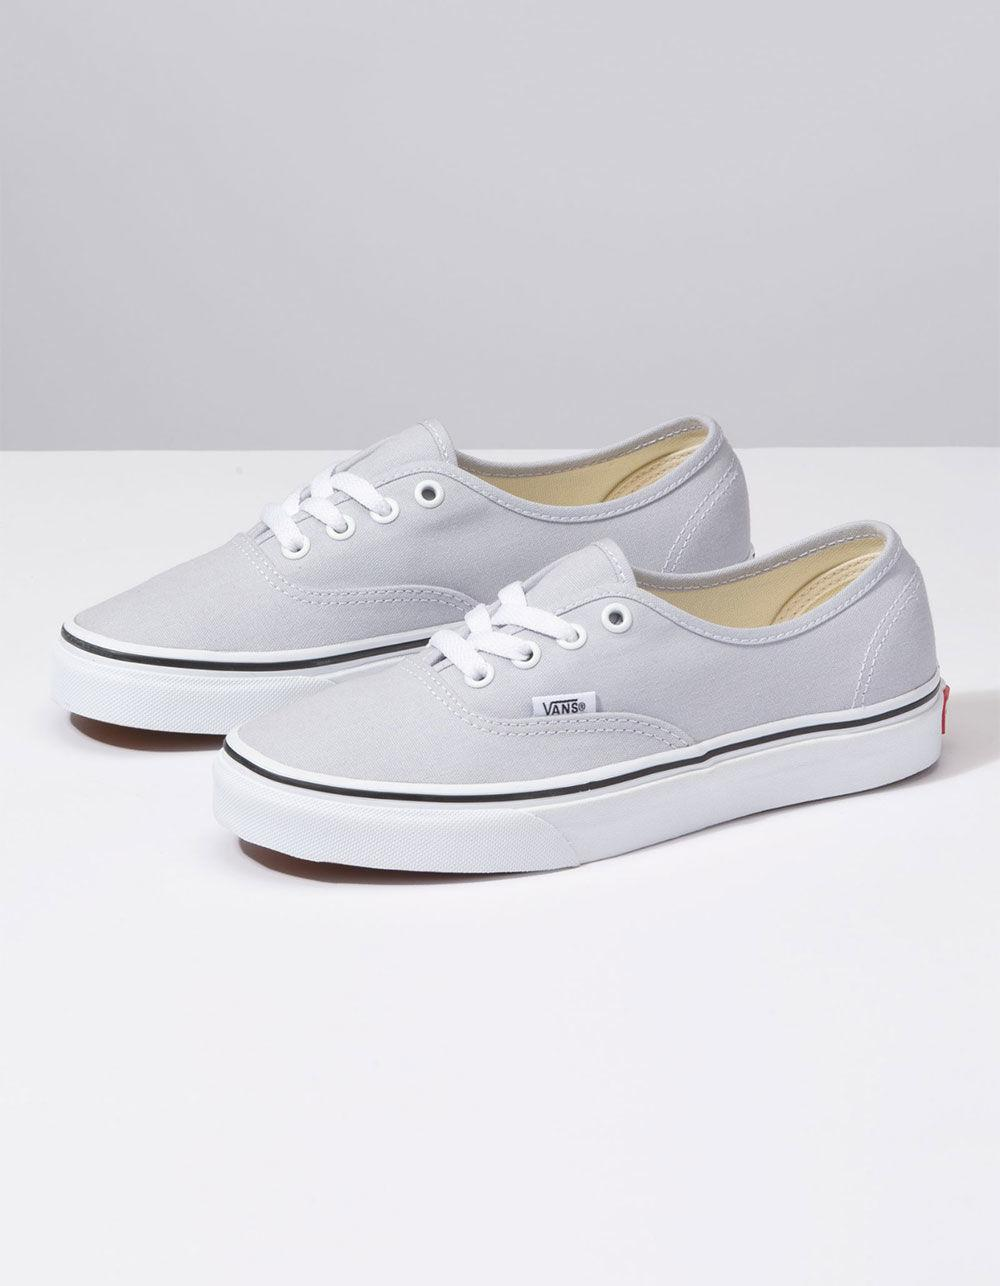 Lyst - Vans Authentic Gray Dawn   True White Womens Shoes in White d38b4fab29